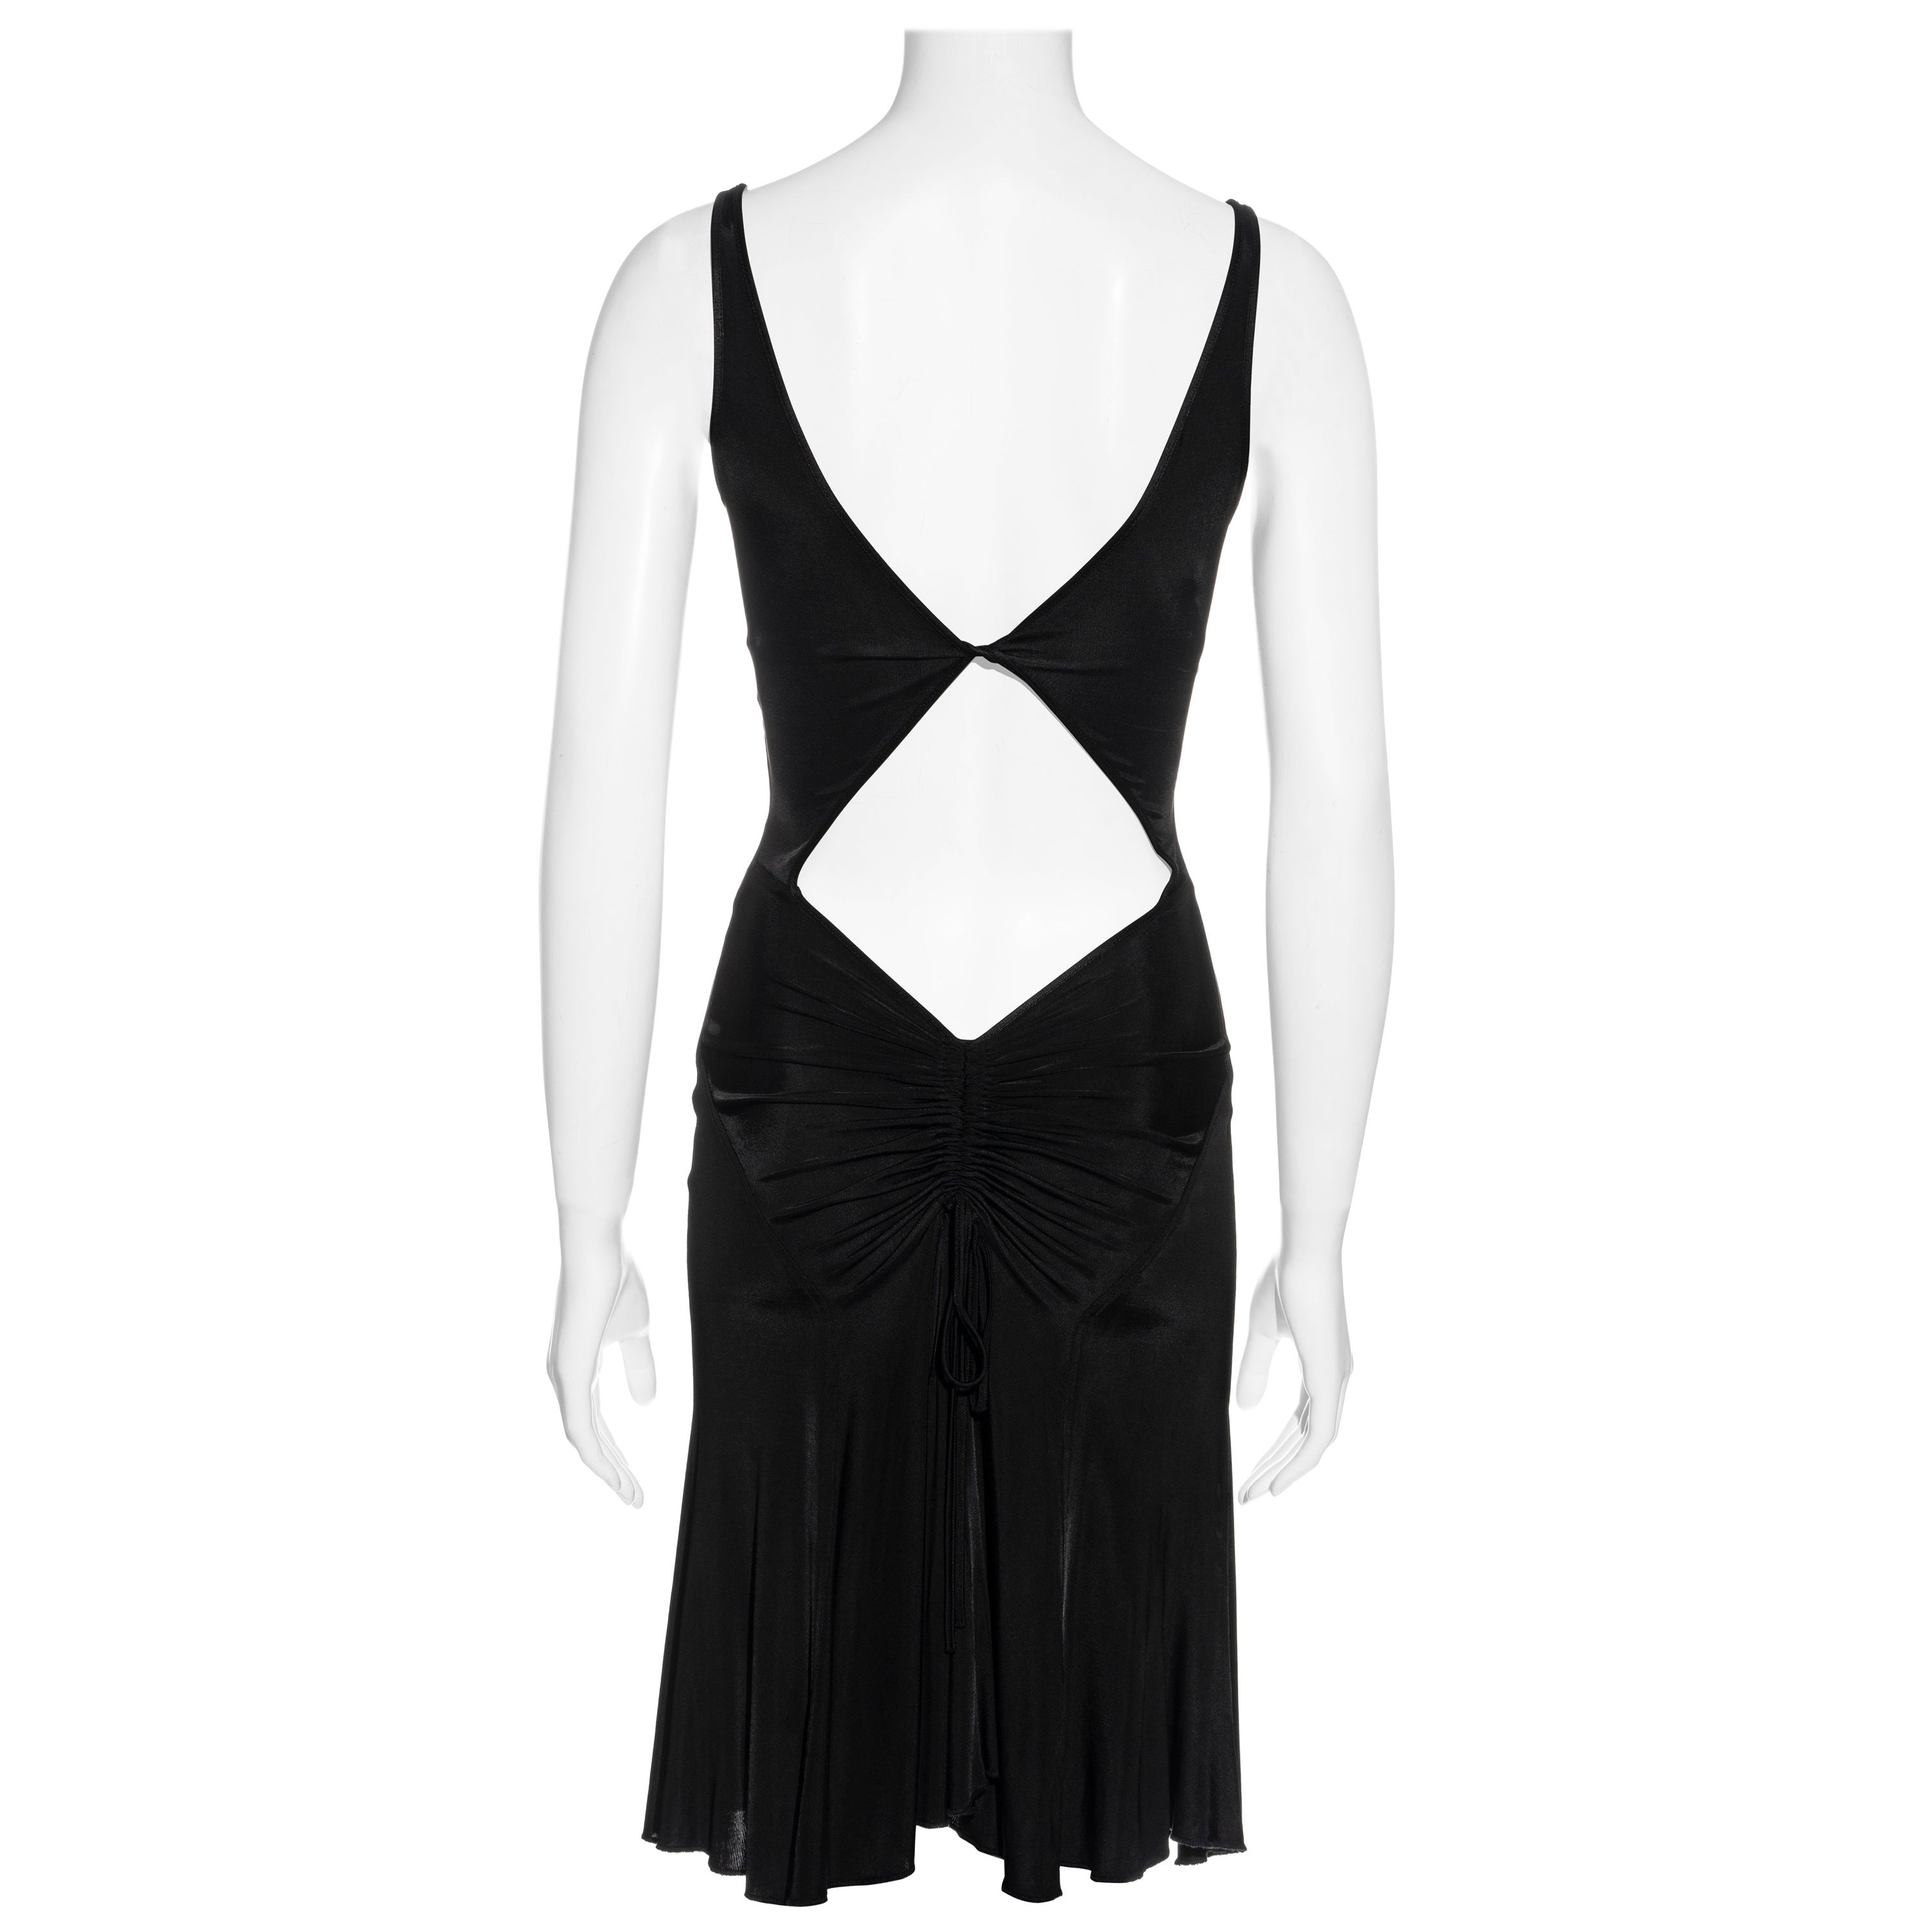 Versace Jeans Couture black rayon dress with cut-out back, c. 2000